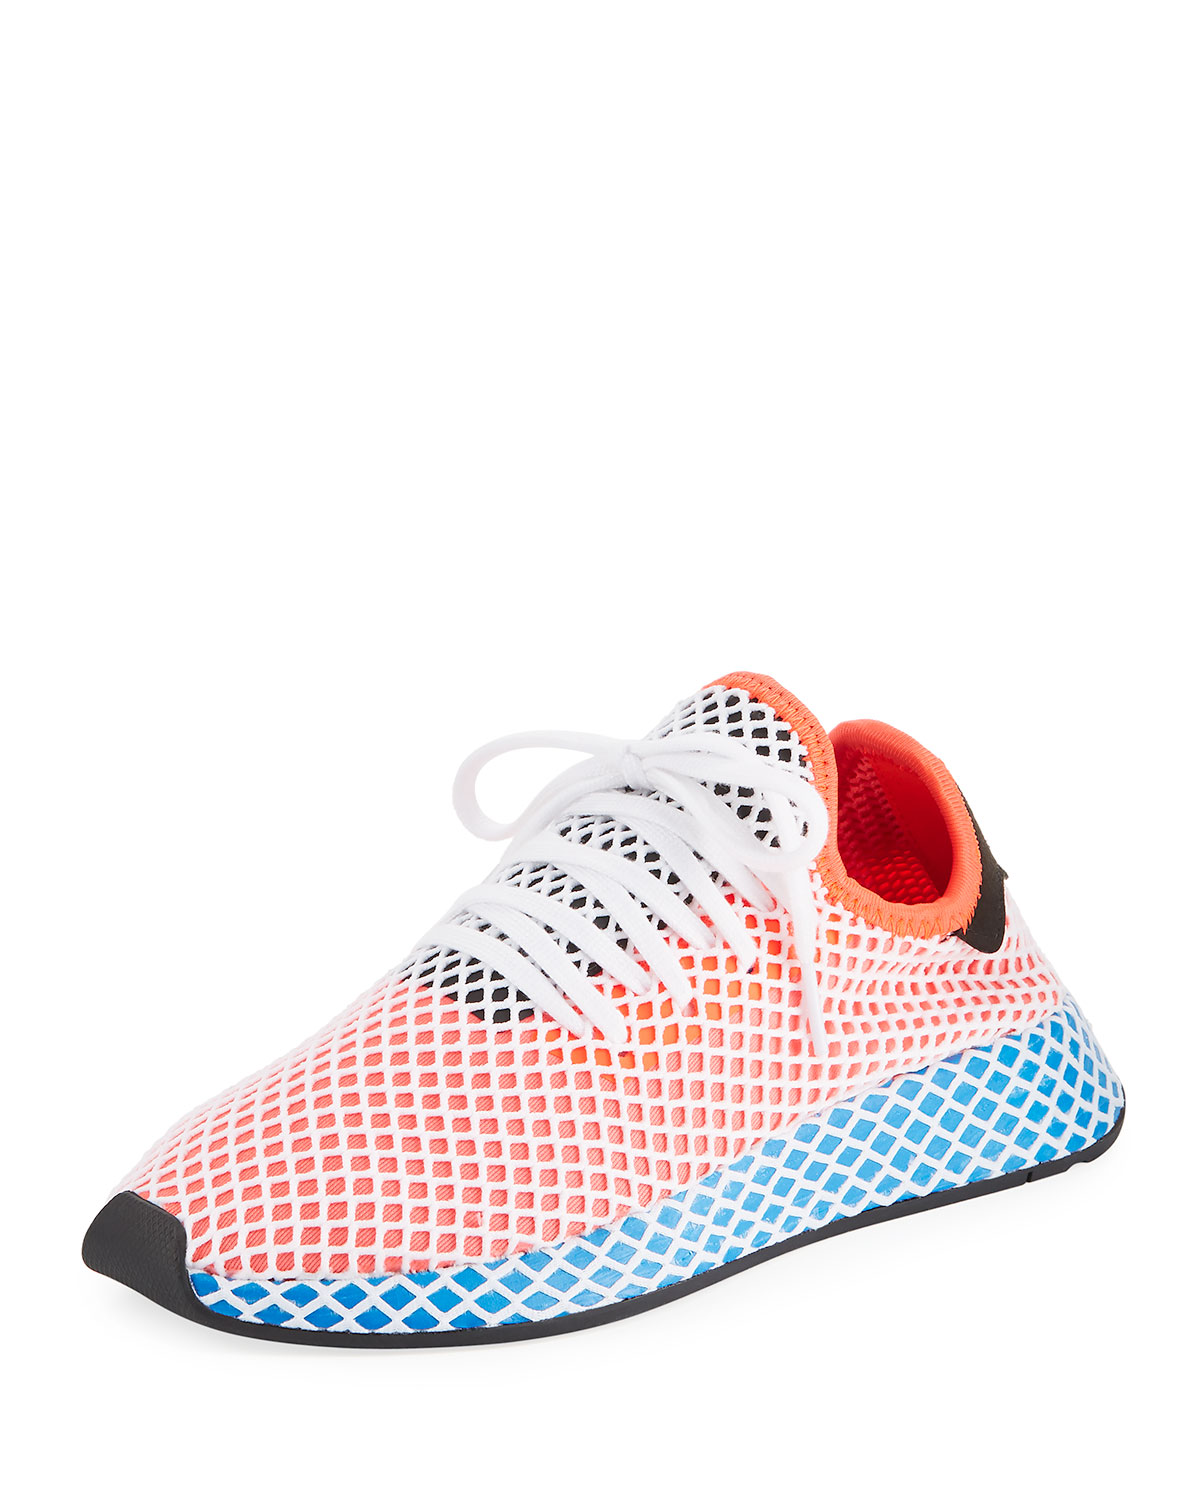 55cf18b9a Adidas Originals Sneakers Adidas Deerupt Runner Sneakers In Knit And Mesh  Stretch Net Effect In Blue